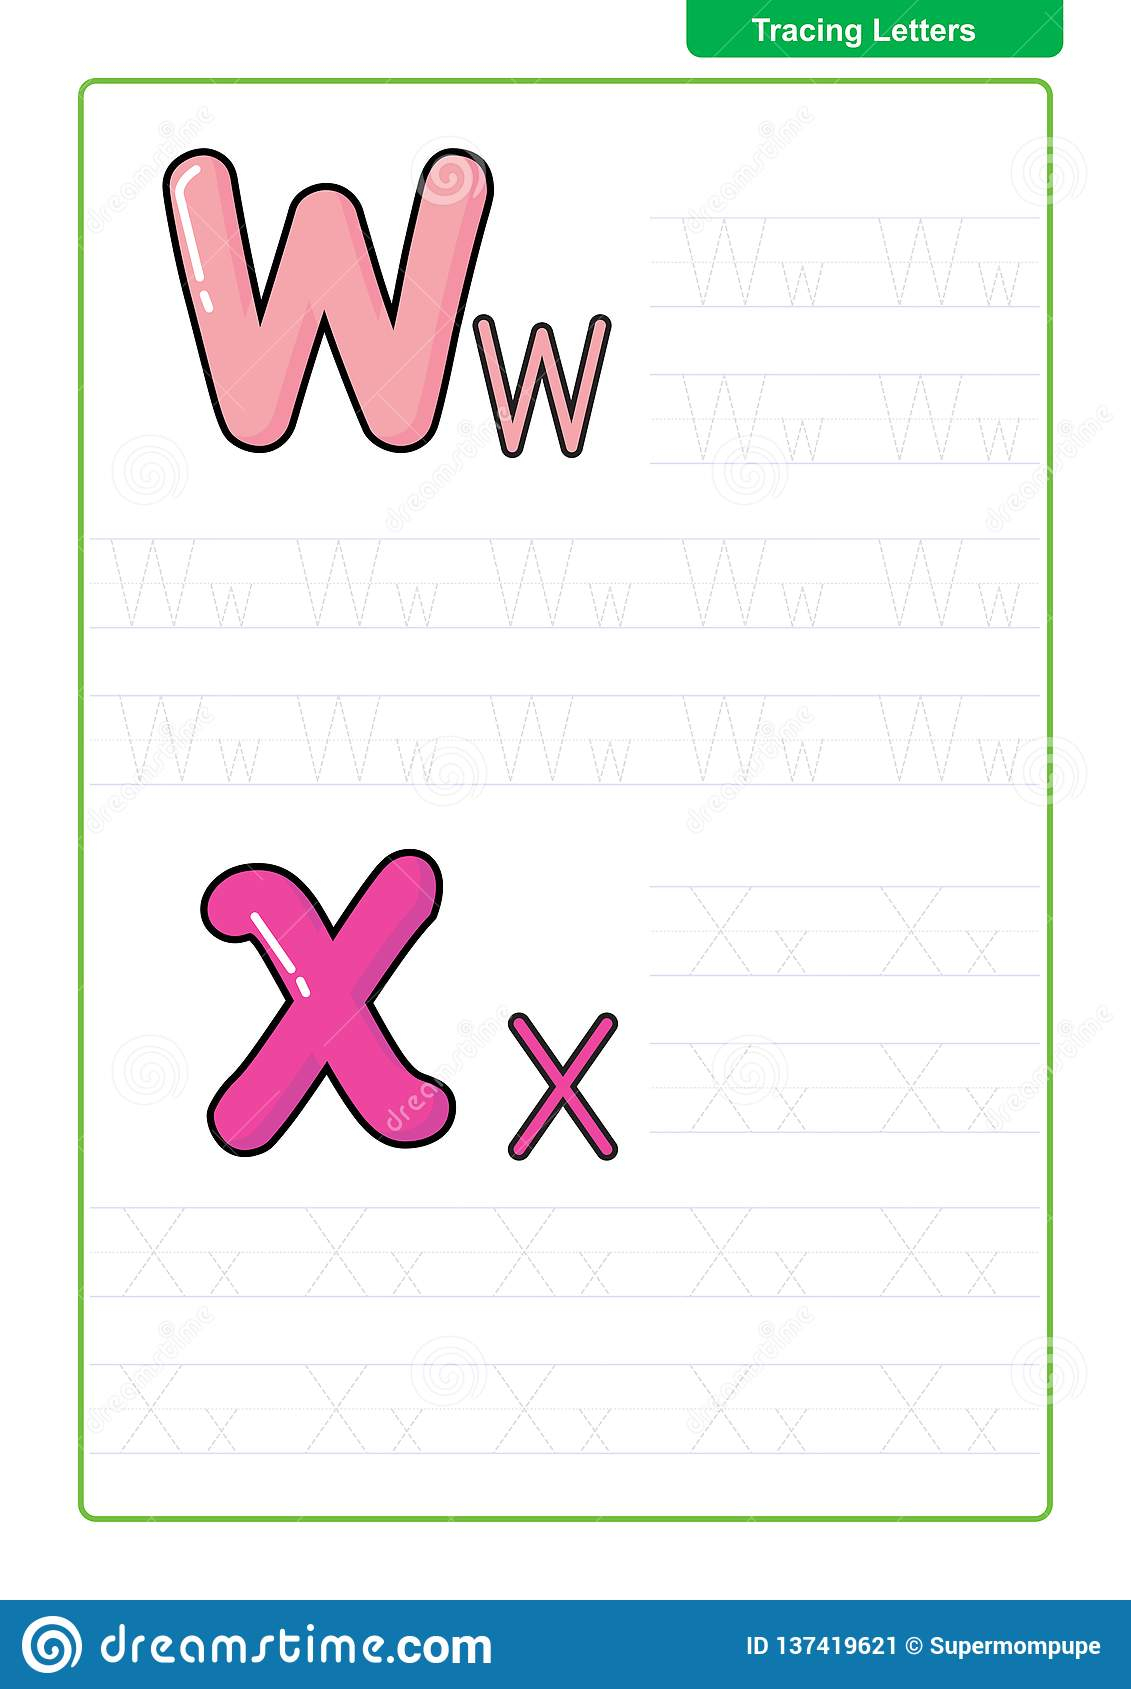 Abc Alphabet Letters Tracing Worksheet With Alphabet Letters inside Tracing Letters Font